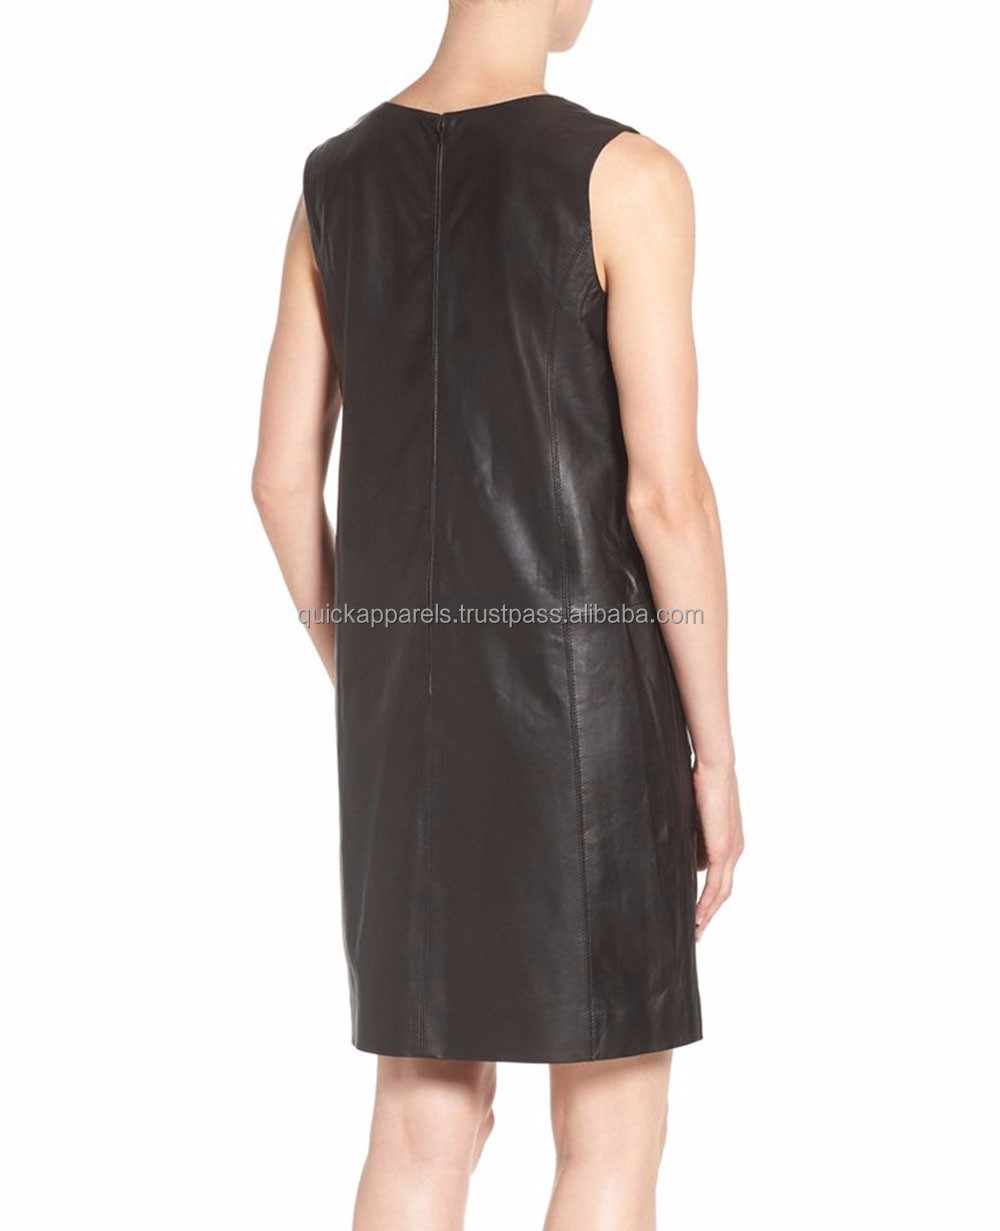 OEM Customized Women PU Leather Bodycon Midi Dress Zip Up Fashion Dress